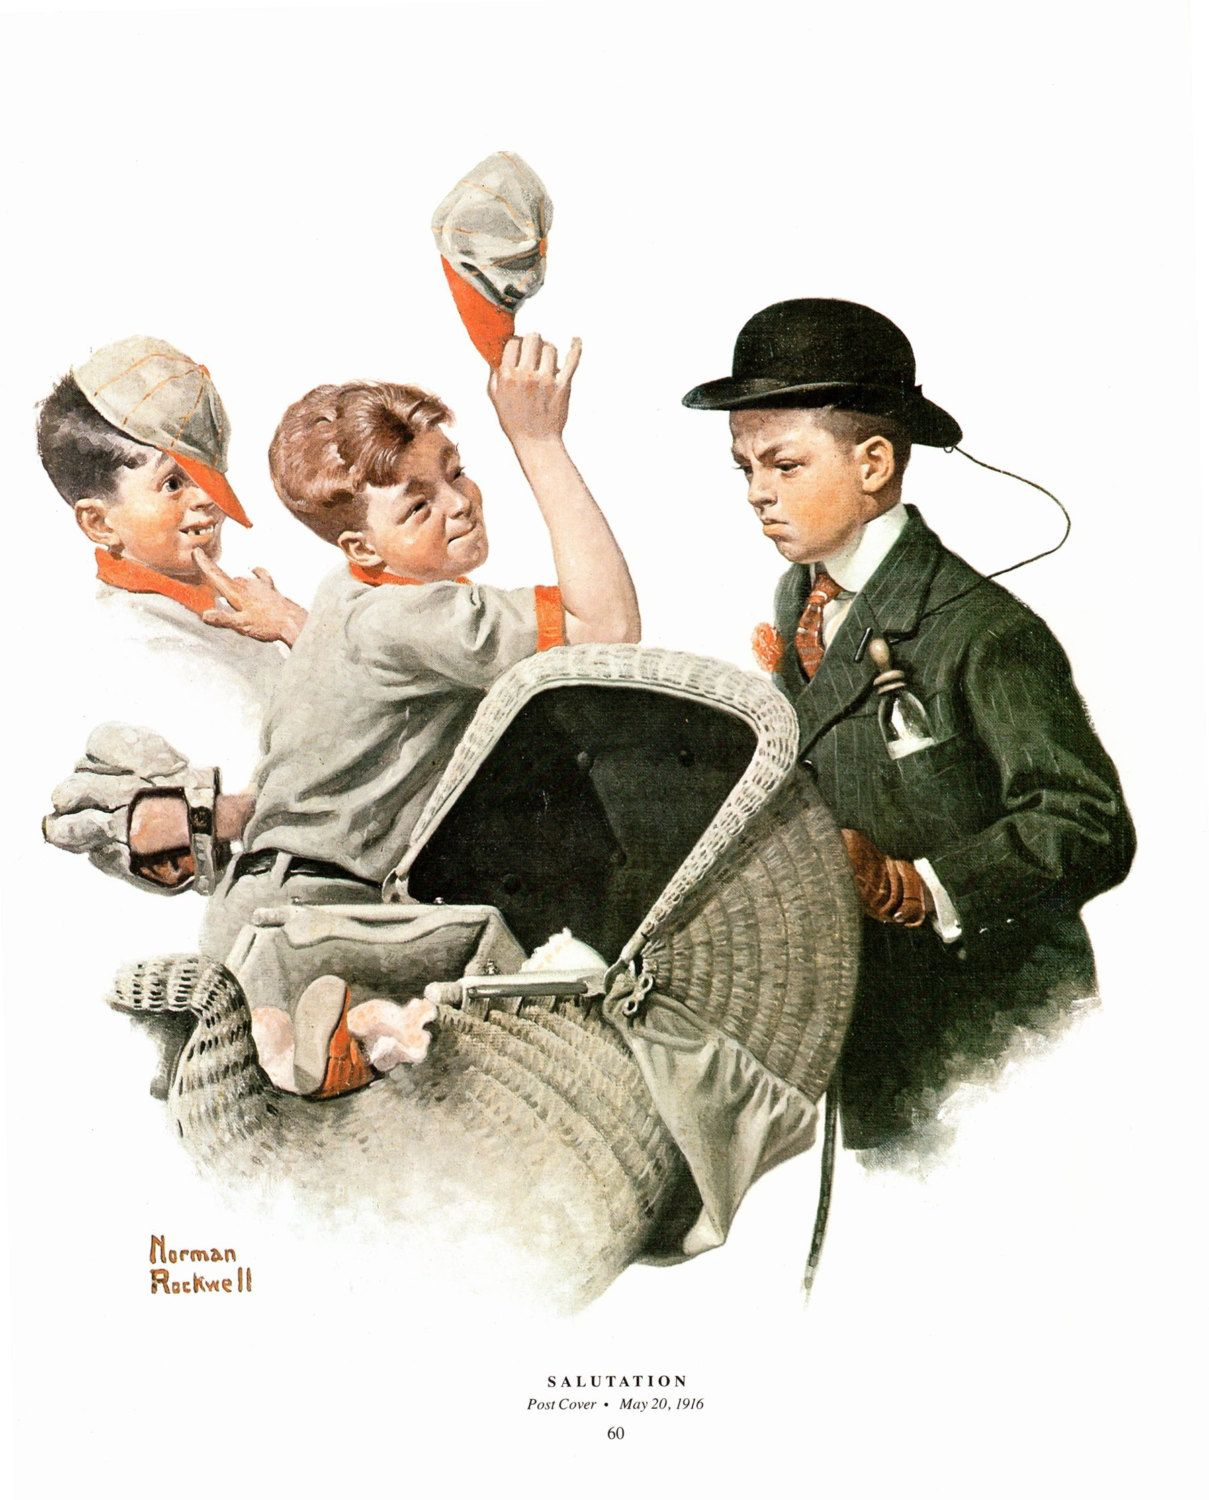 Salutation Post Cover Painted By Norman Rockwell The Page Is